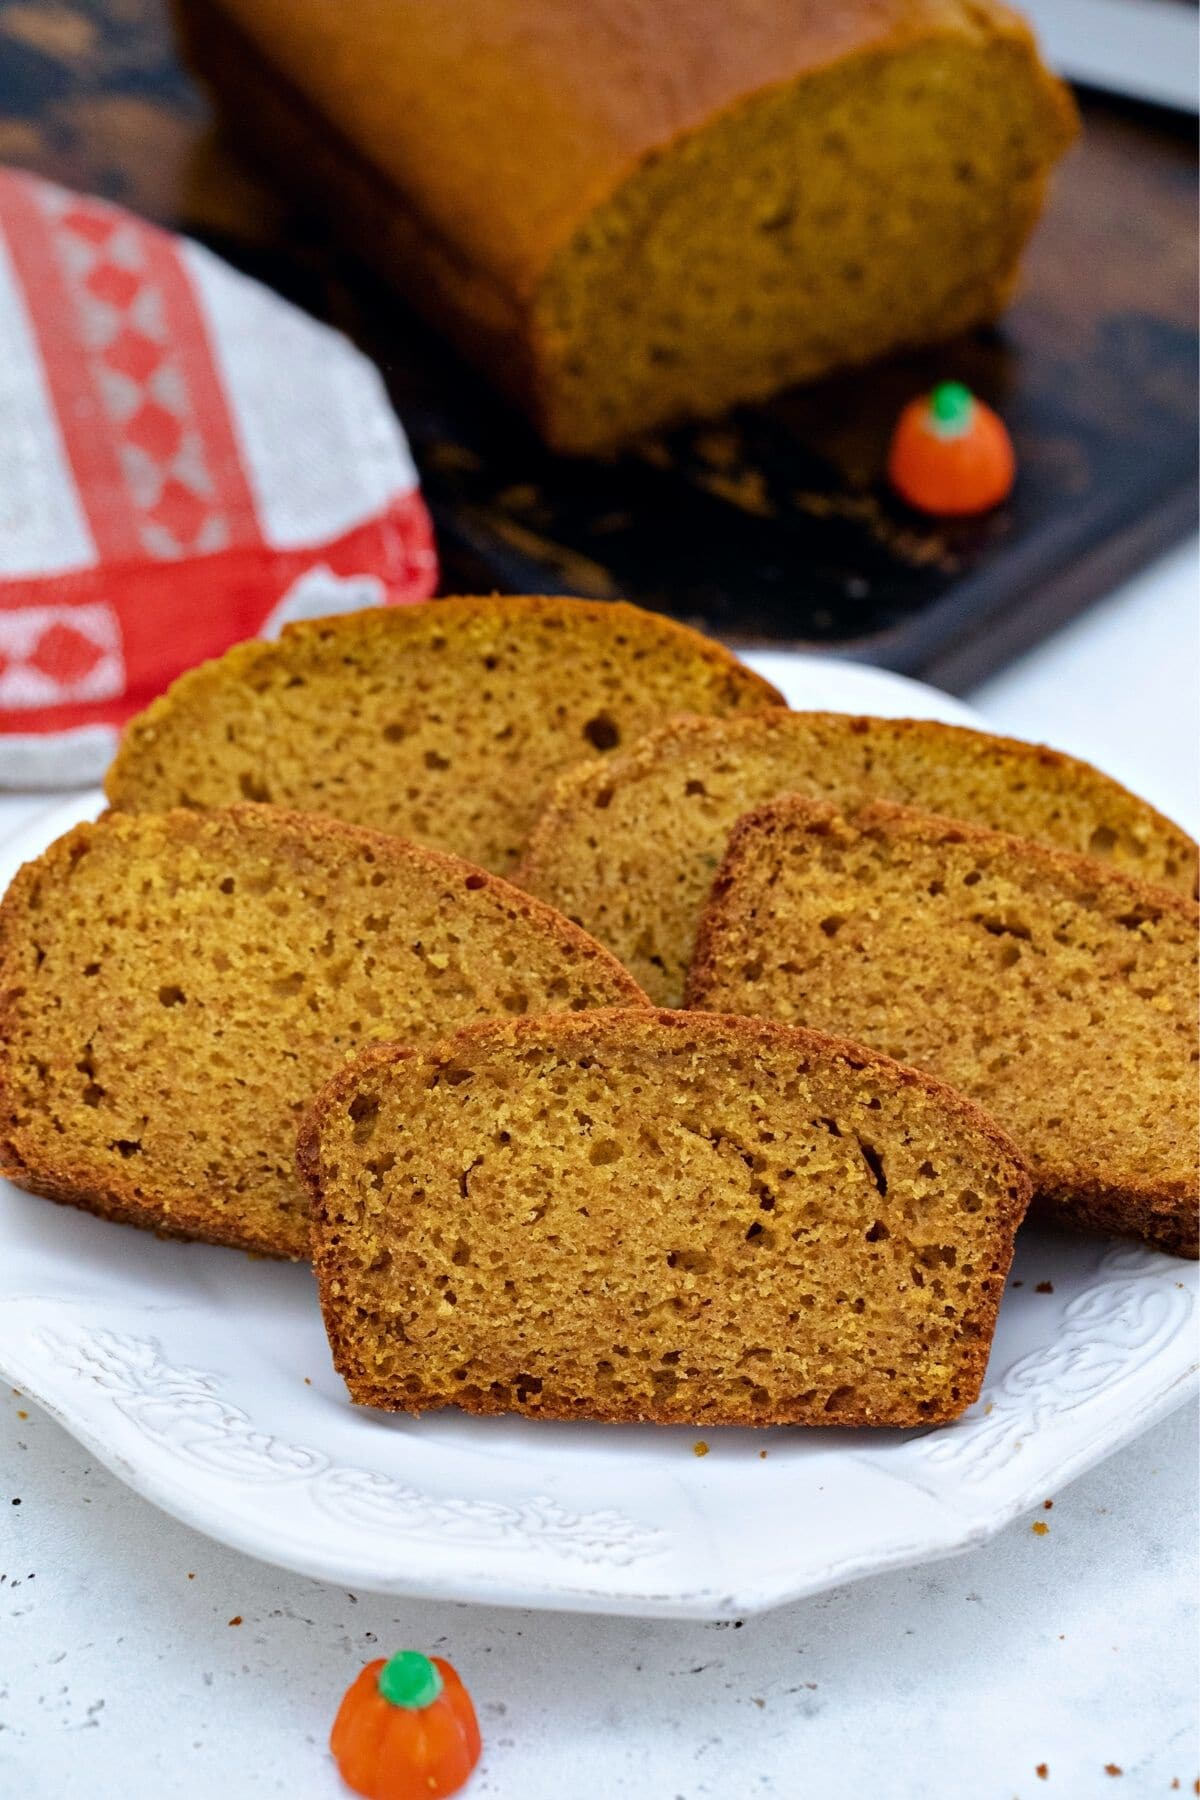 Pumpkin bread slices on white plate next to red and white napkin